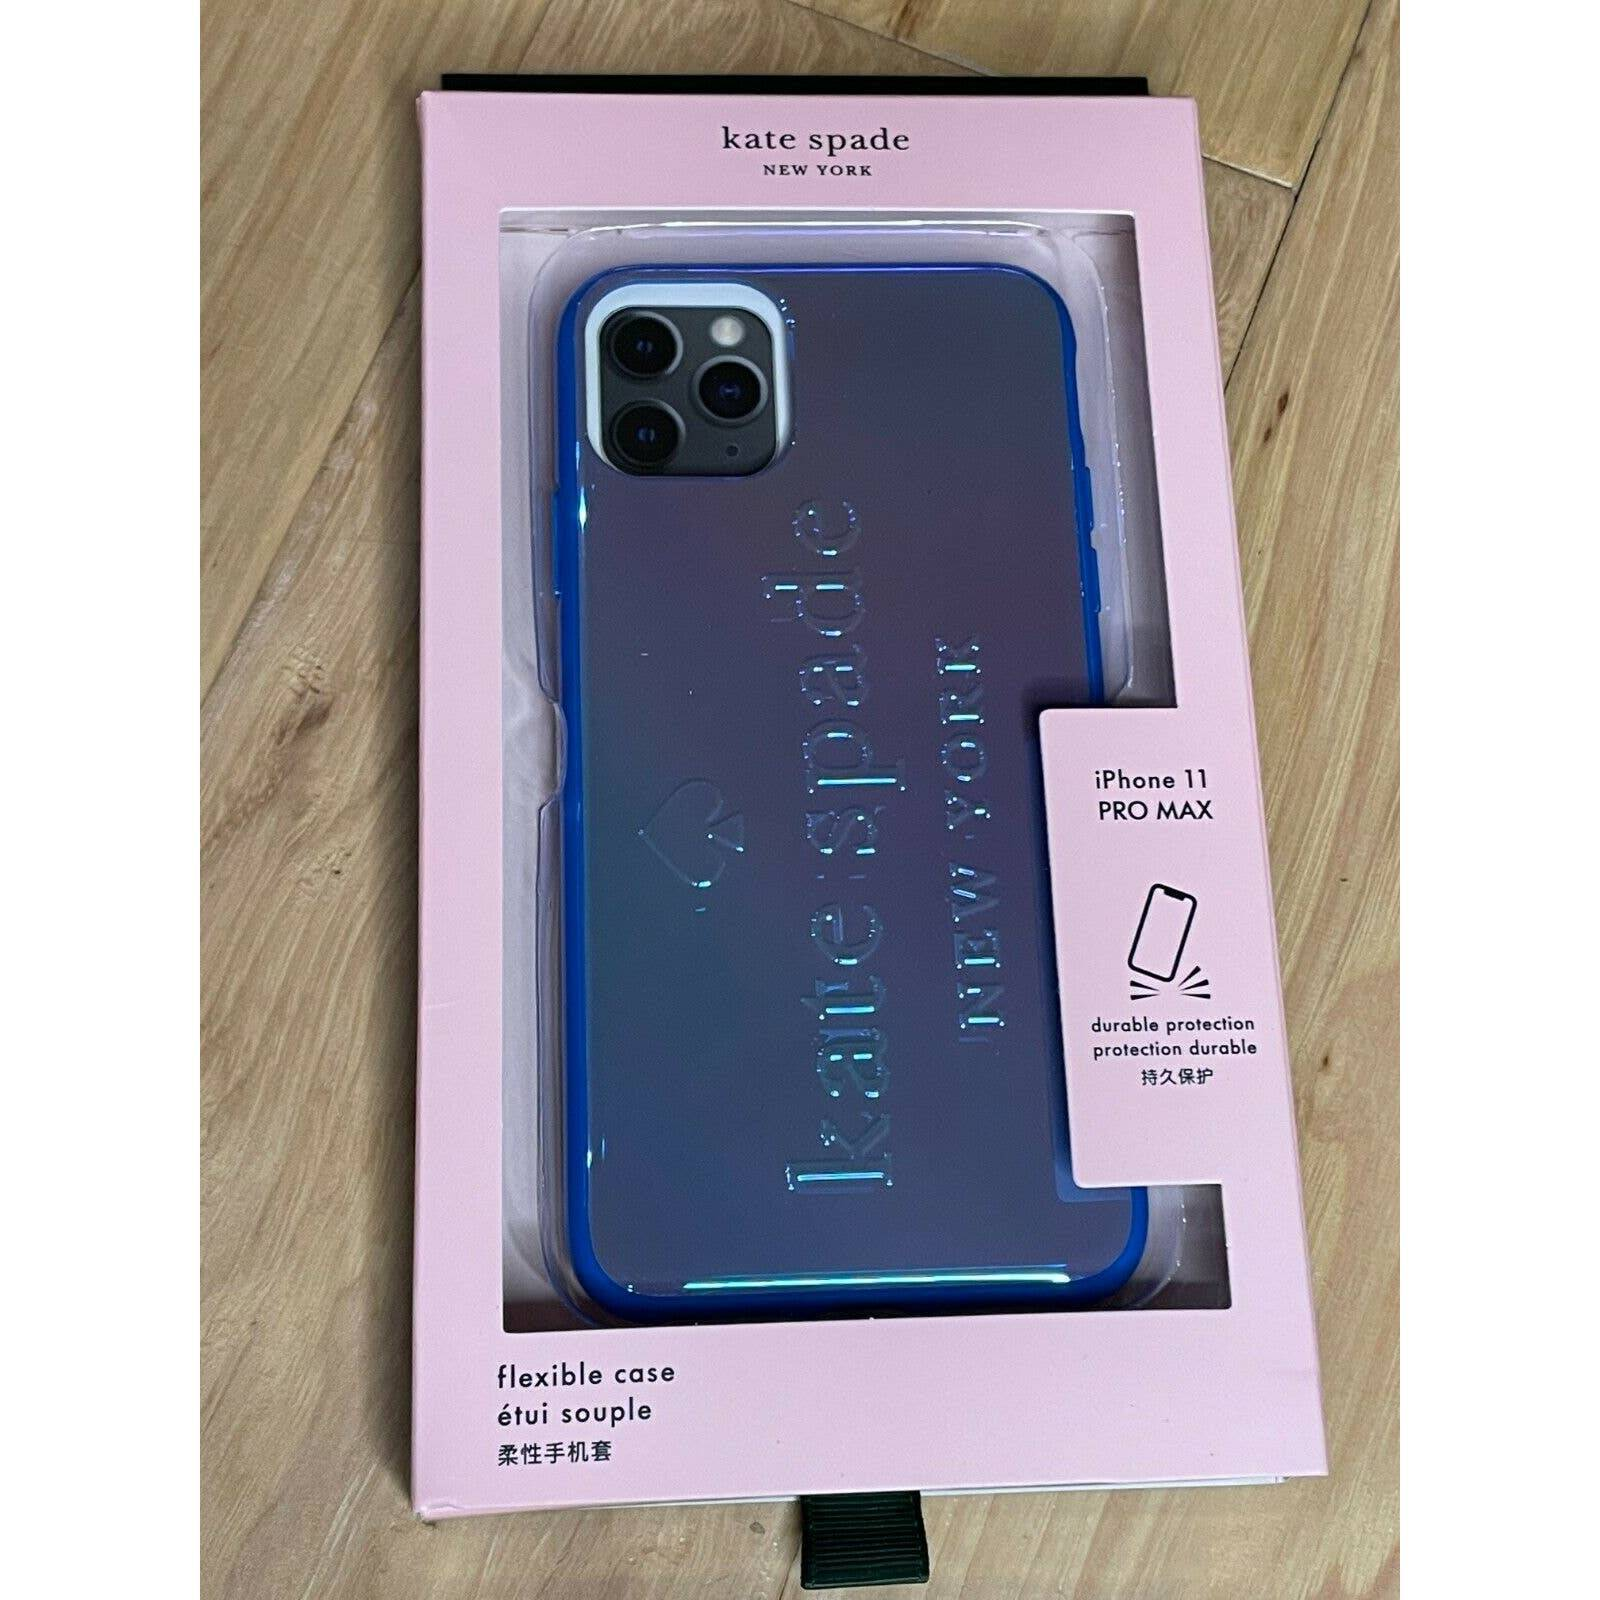 Kate Spade iPhone 11 PRO MAX Case